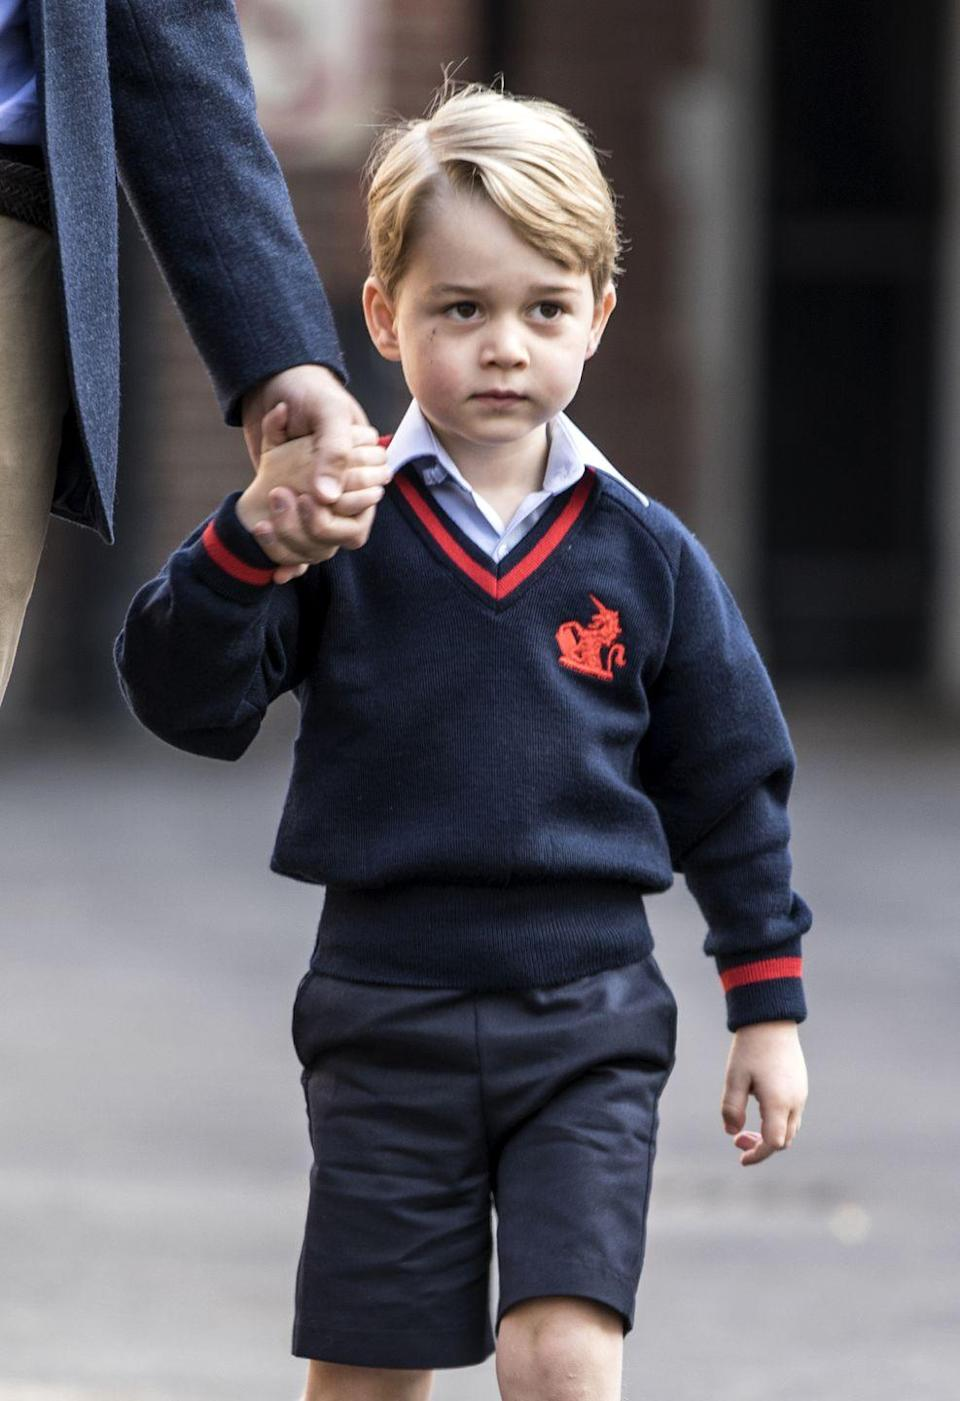 """<p><strong>Branch of the Family Tree:</strong> Son of Prince William; grandson of Prince Charles; great-grandson of Queen Elizabeth II</p><p><strong>More:</strong> <a href=""""https://www.townandcountrymag.com/society/tradition/g10044961/prince-george-photos-news/"""" rel=""""nofollow noopener"""" target=""""_blank"""" data-ylk=""""slk:The Cutest Photos of Prince George"""" class=""""link rapid-noclick-resp"""">The Cutest Photos of Prince George</a></p>"""